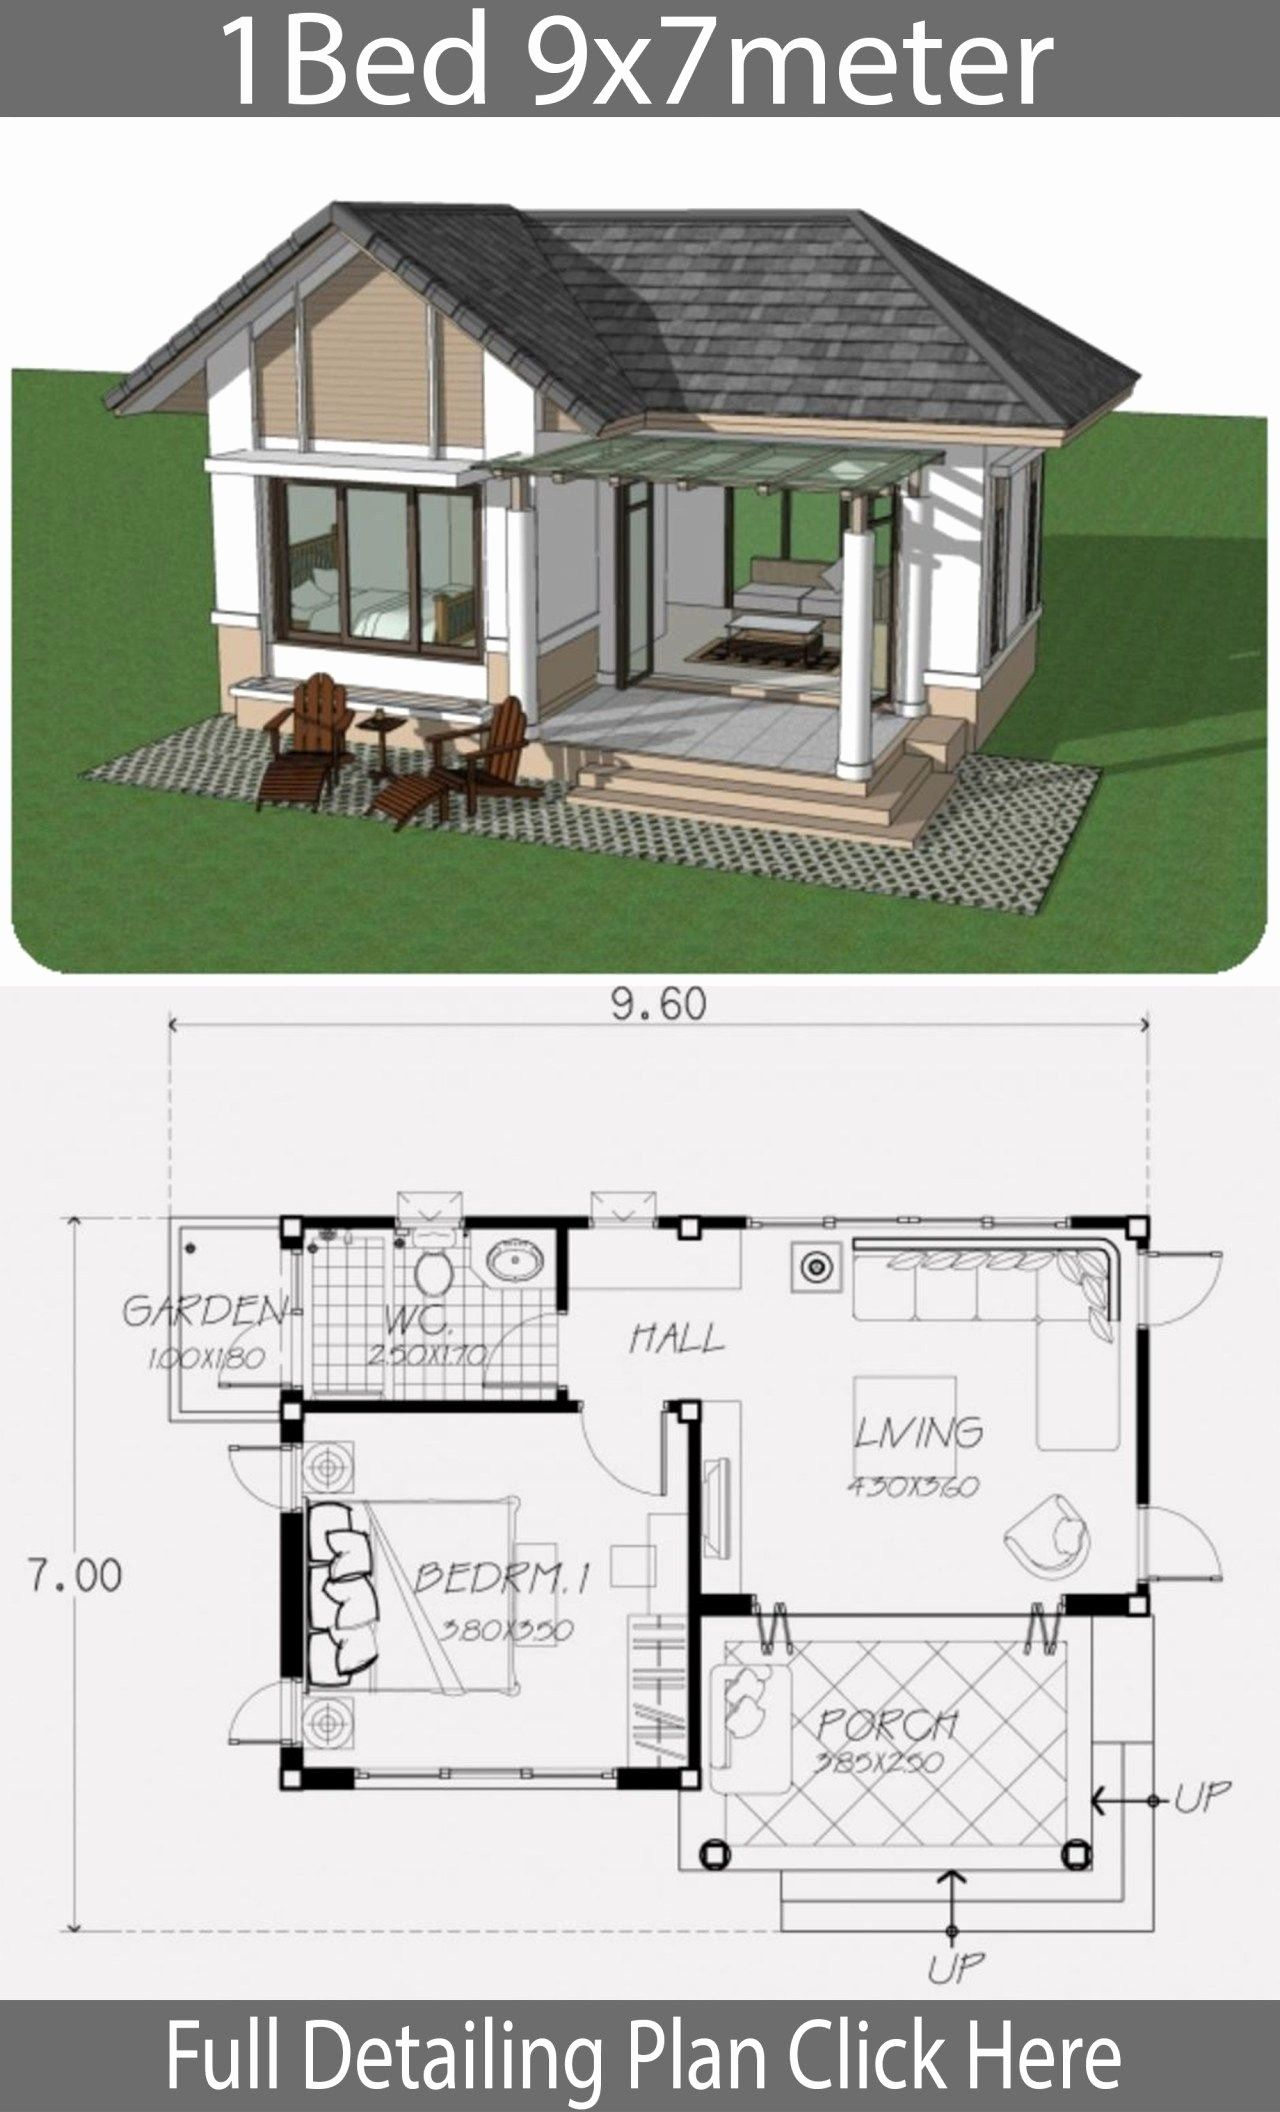 Small One Bedroom House Plans Elegant Home Design Plan 9x7m With One Bedroom One Bedroom House House Design House Plans